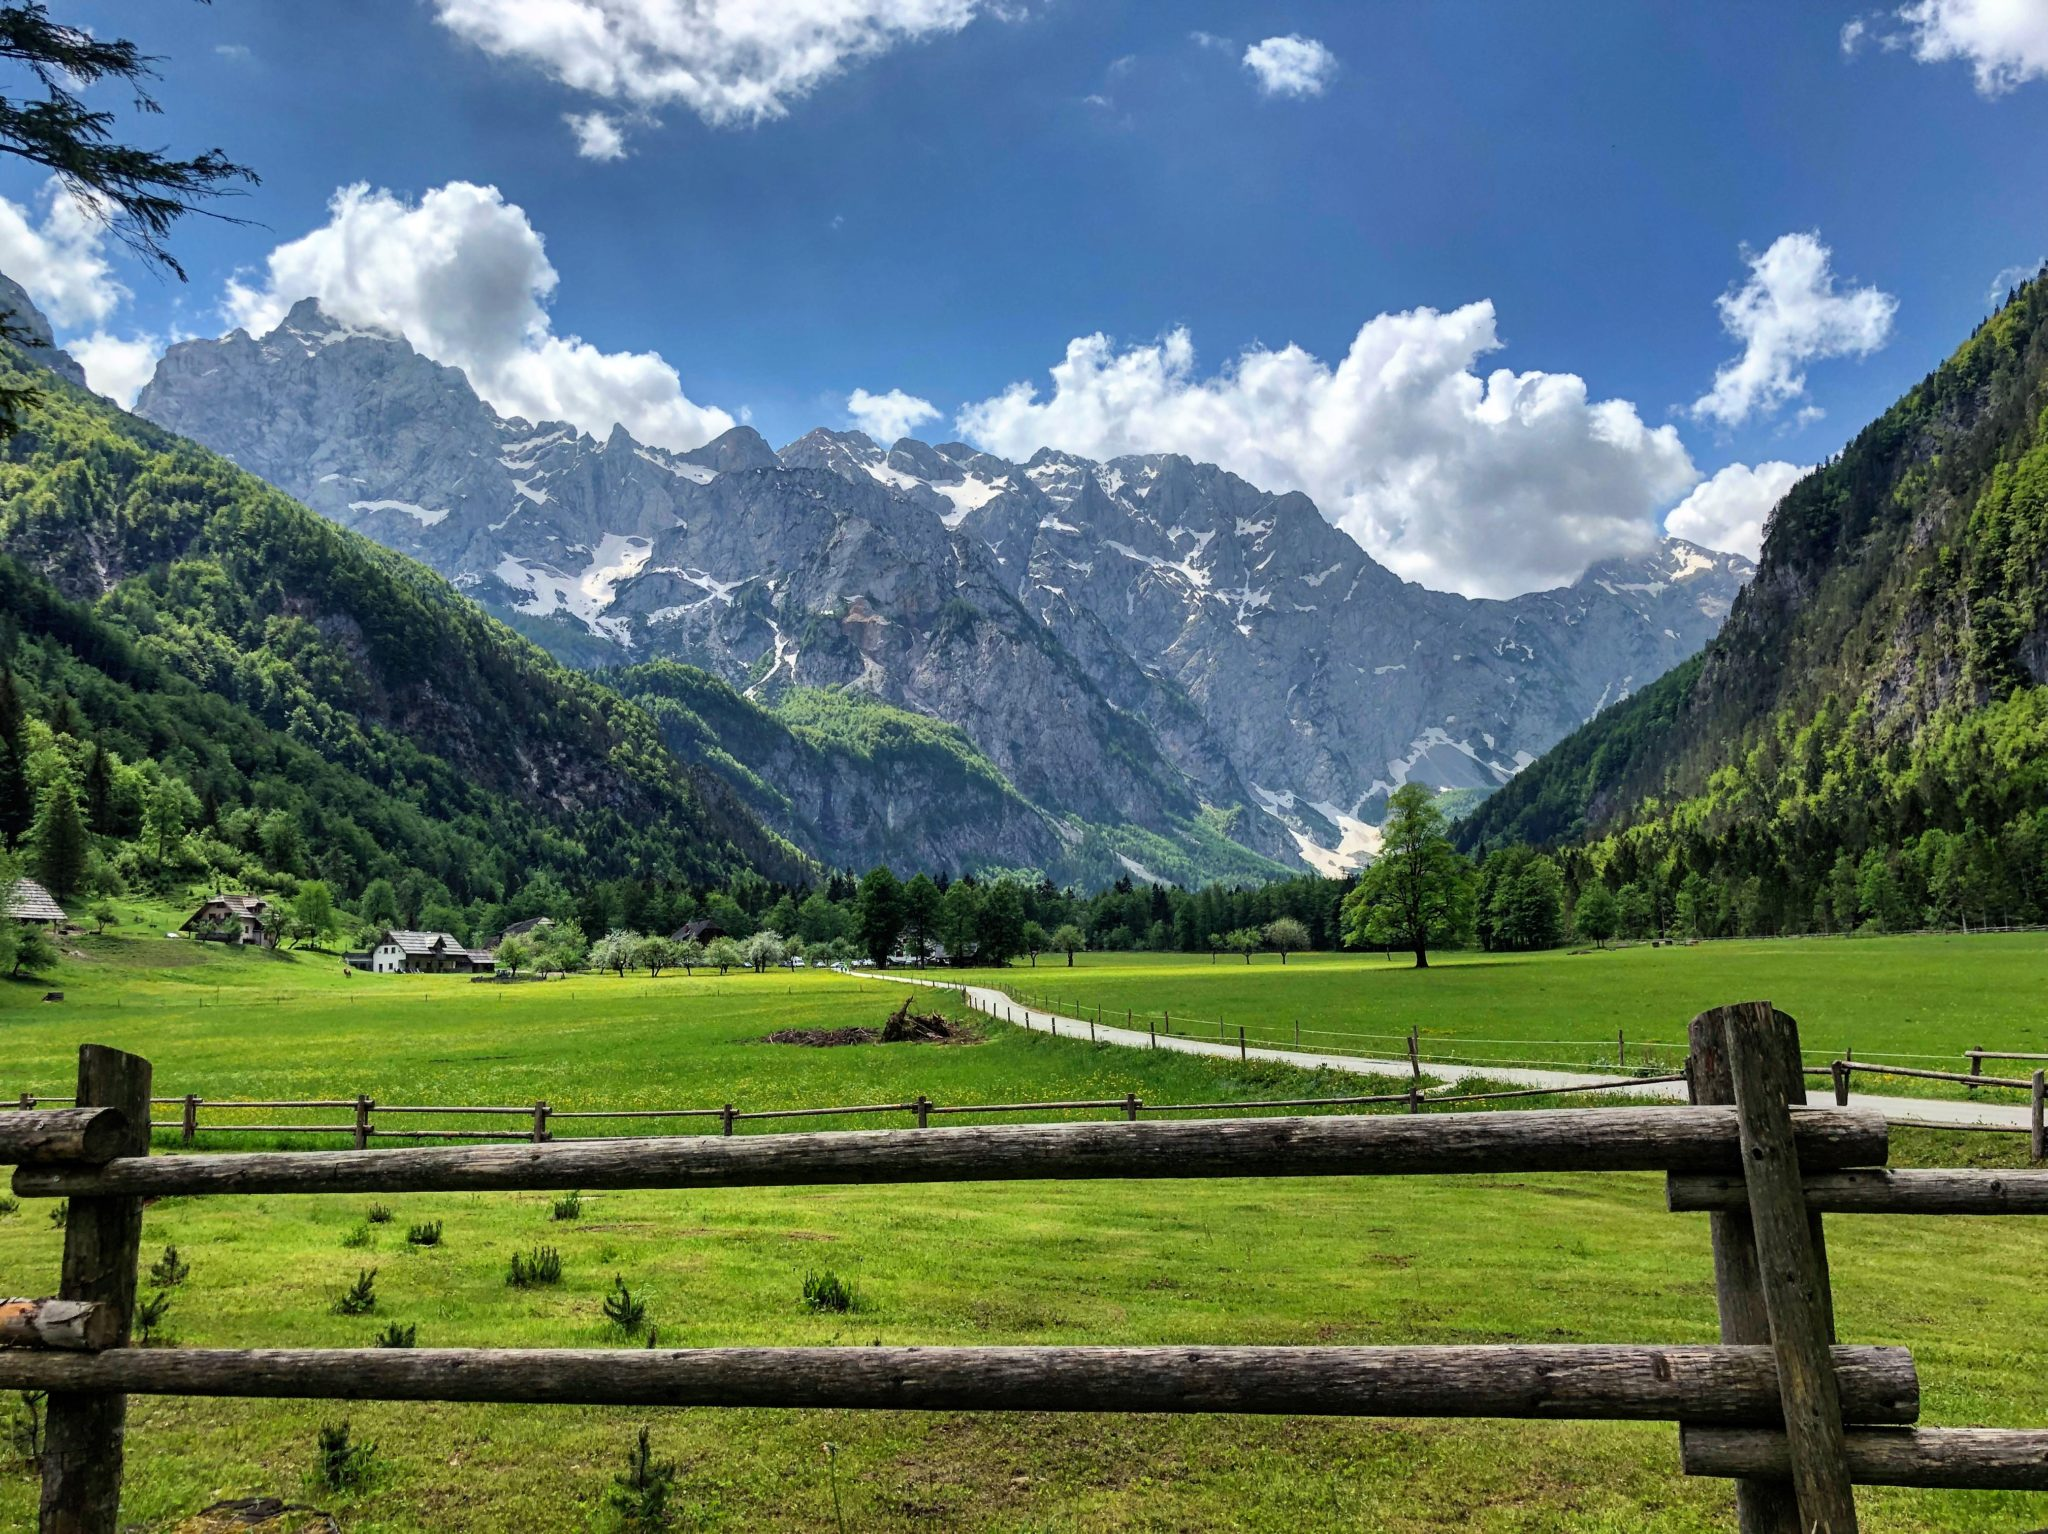 Logar Valley, Slovenia